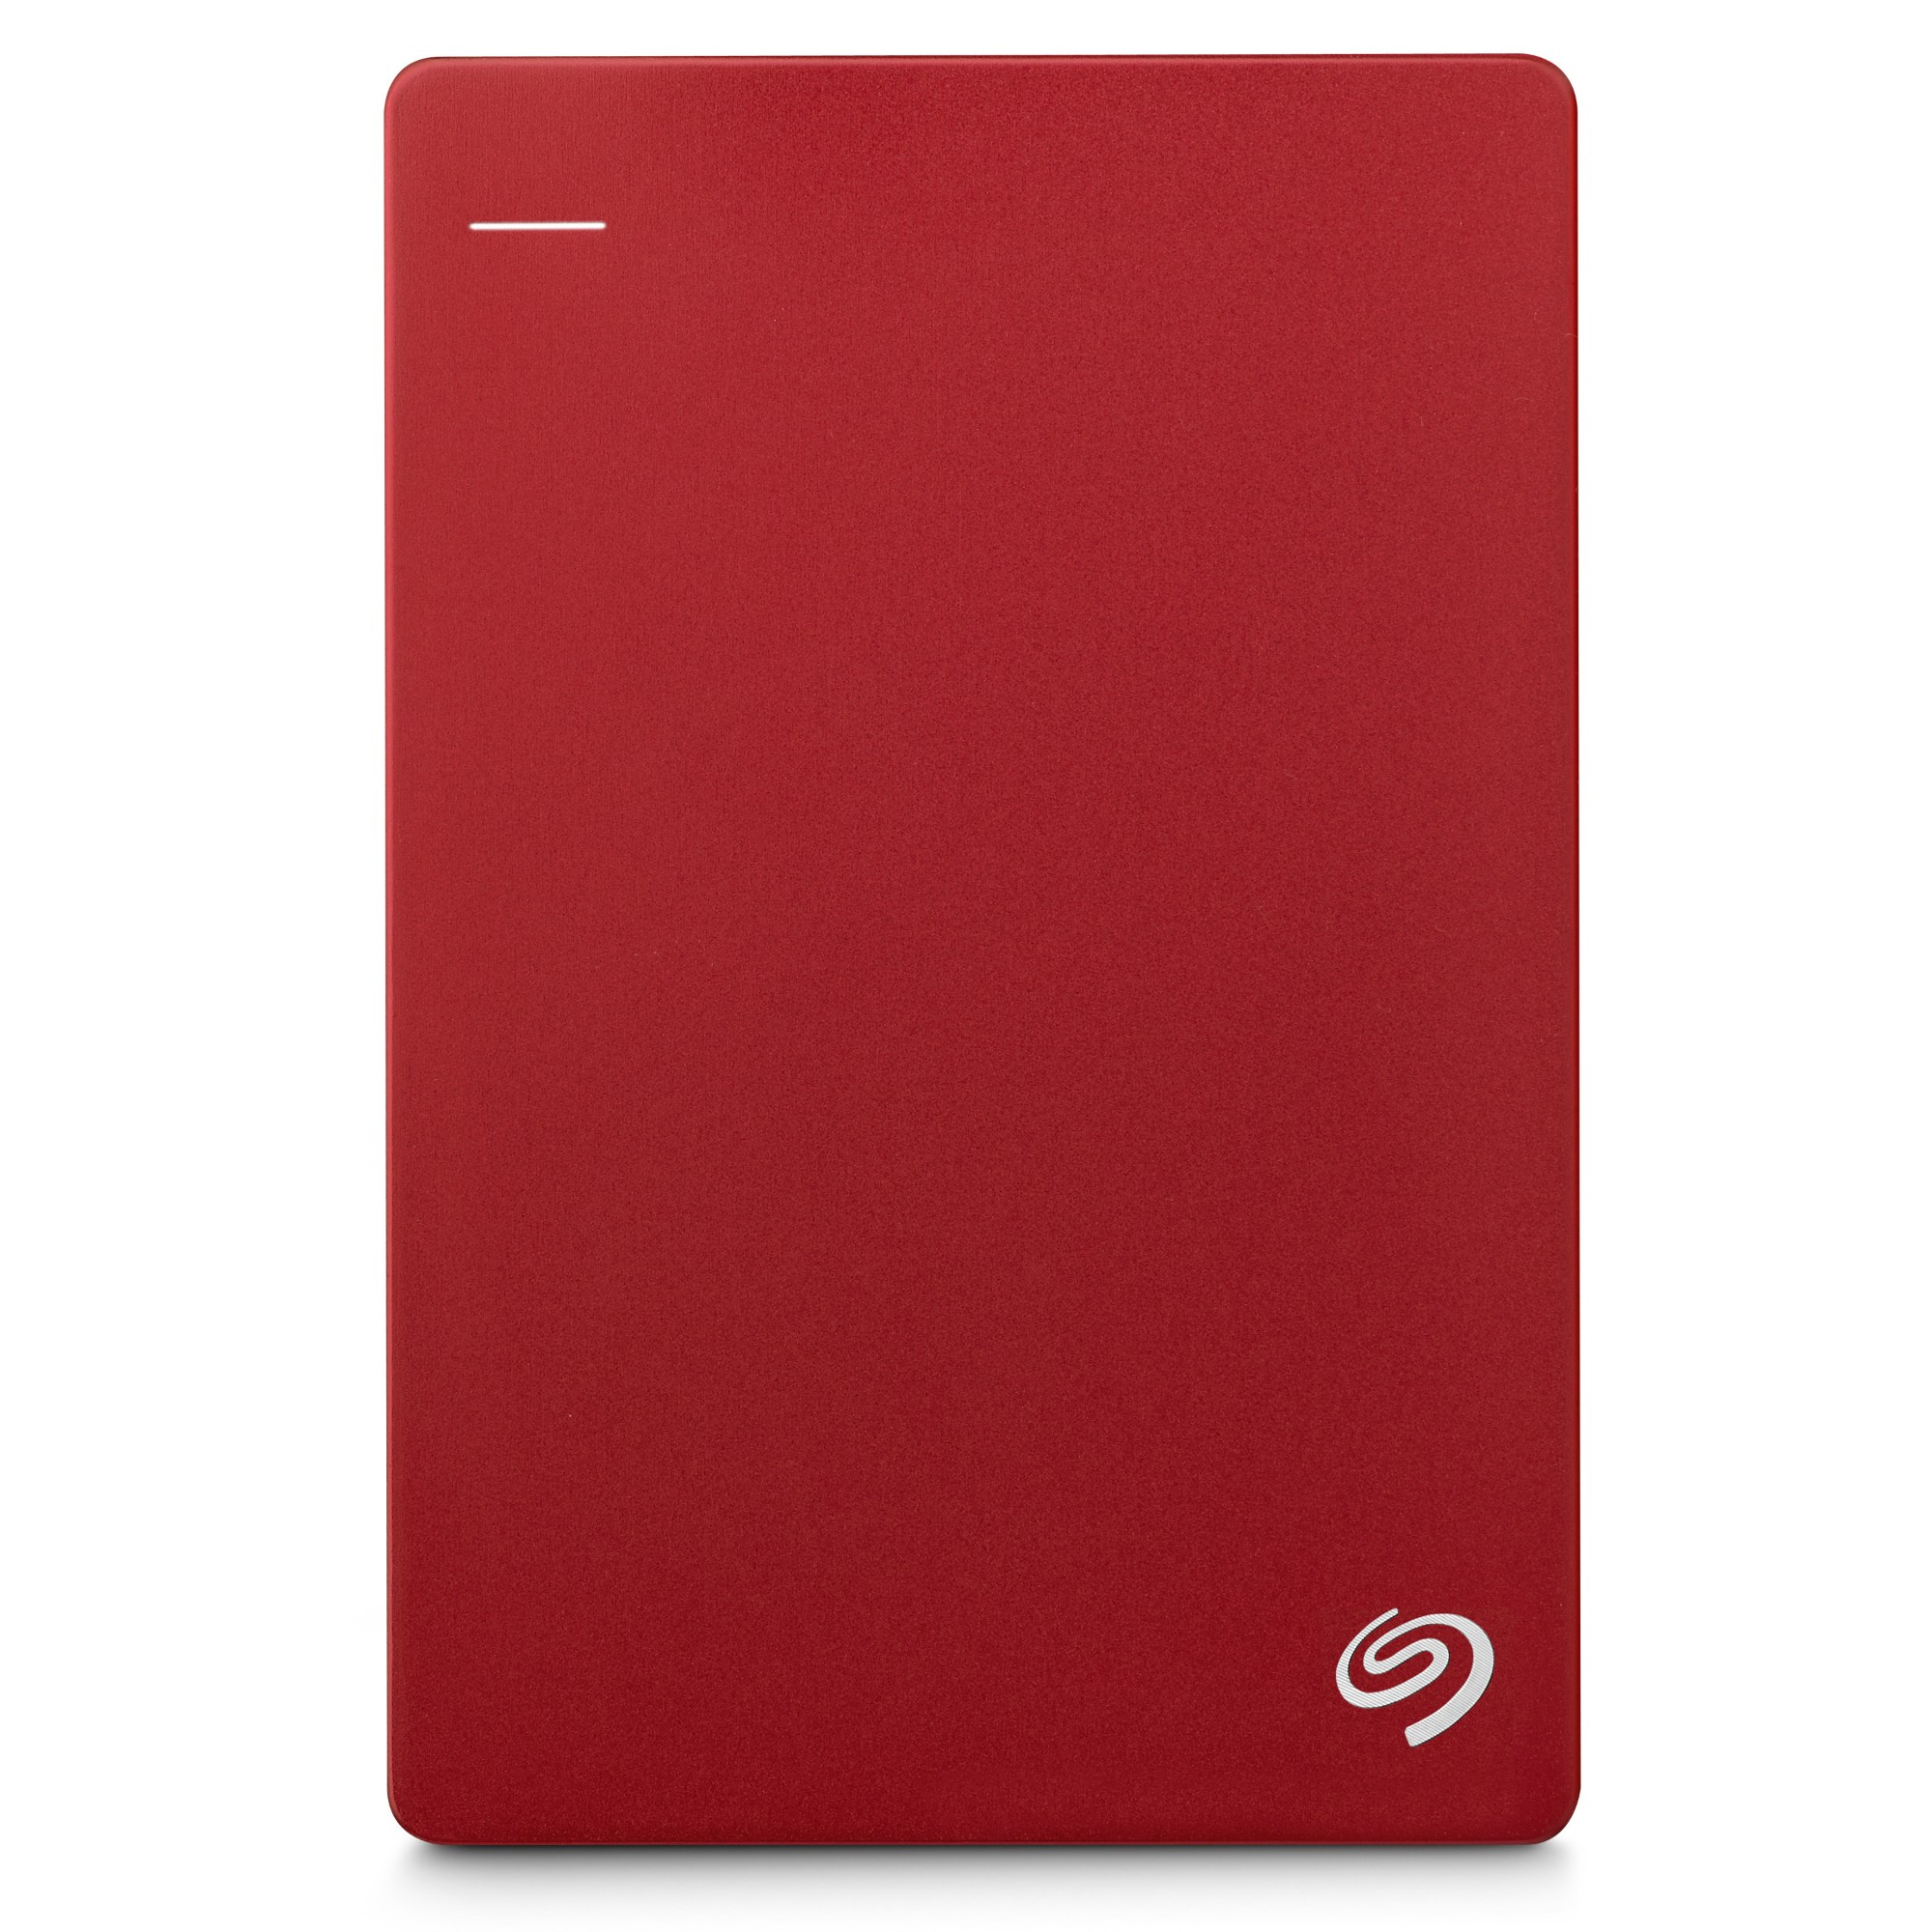 Seagate Backup Plus Slim 1TB USB 3.0 Portable External Hard Drive STDR1000103